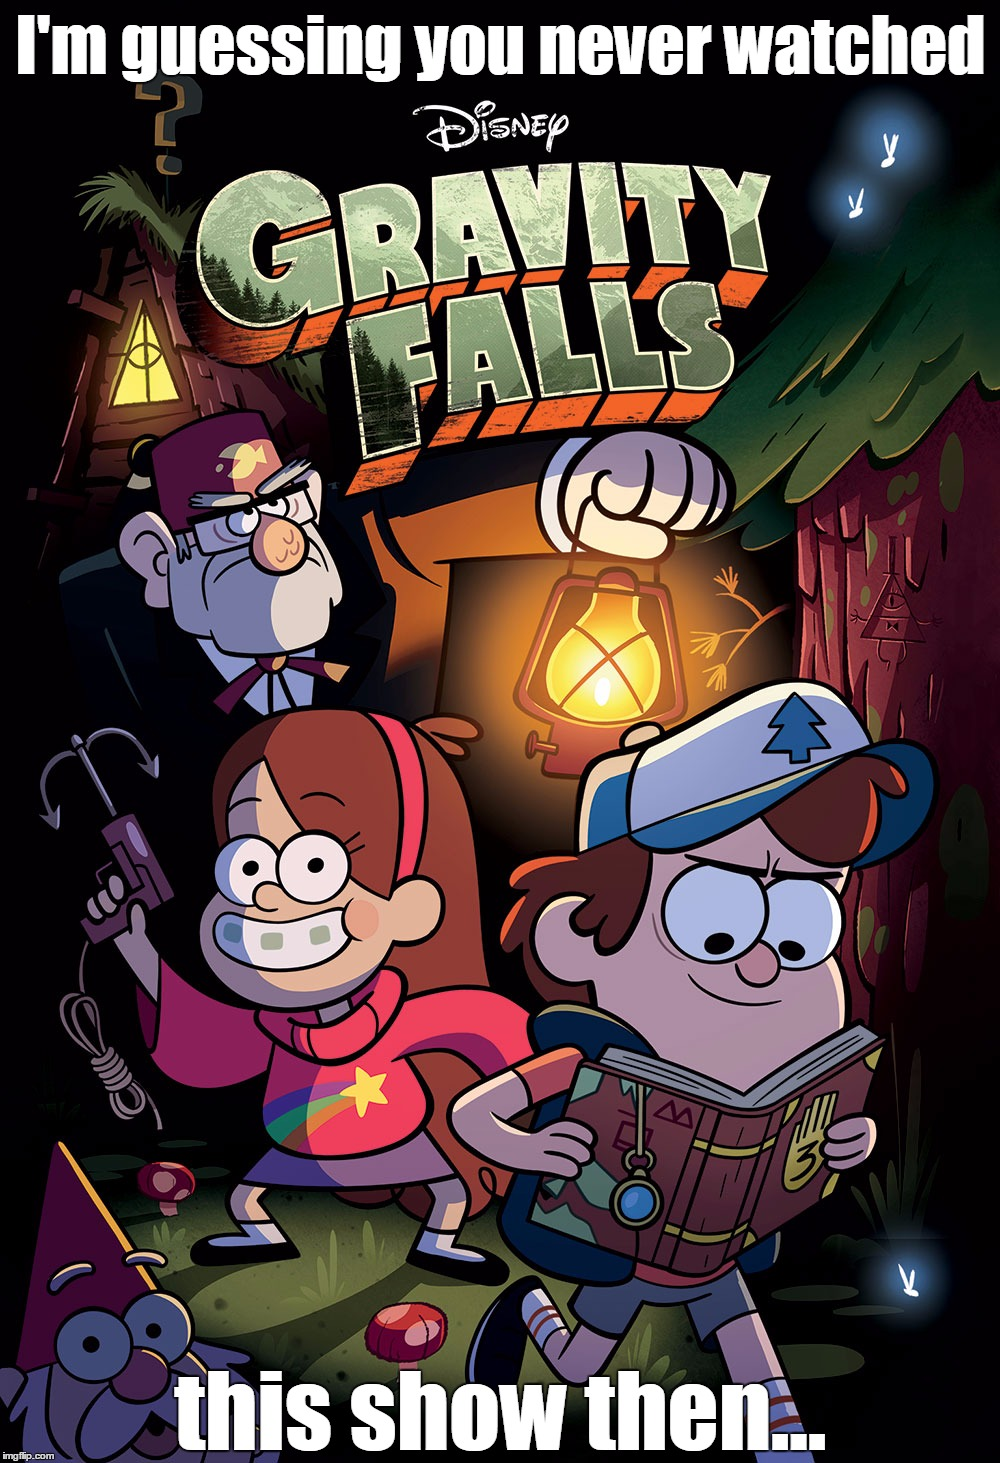 The only cartoon show worth watching that's on right now. | I'm guessing you never watched this show then... | image tagged in memes,gravity falls | made w/ Imgflip meme maker